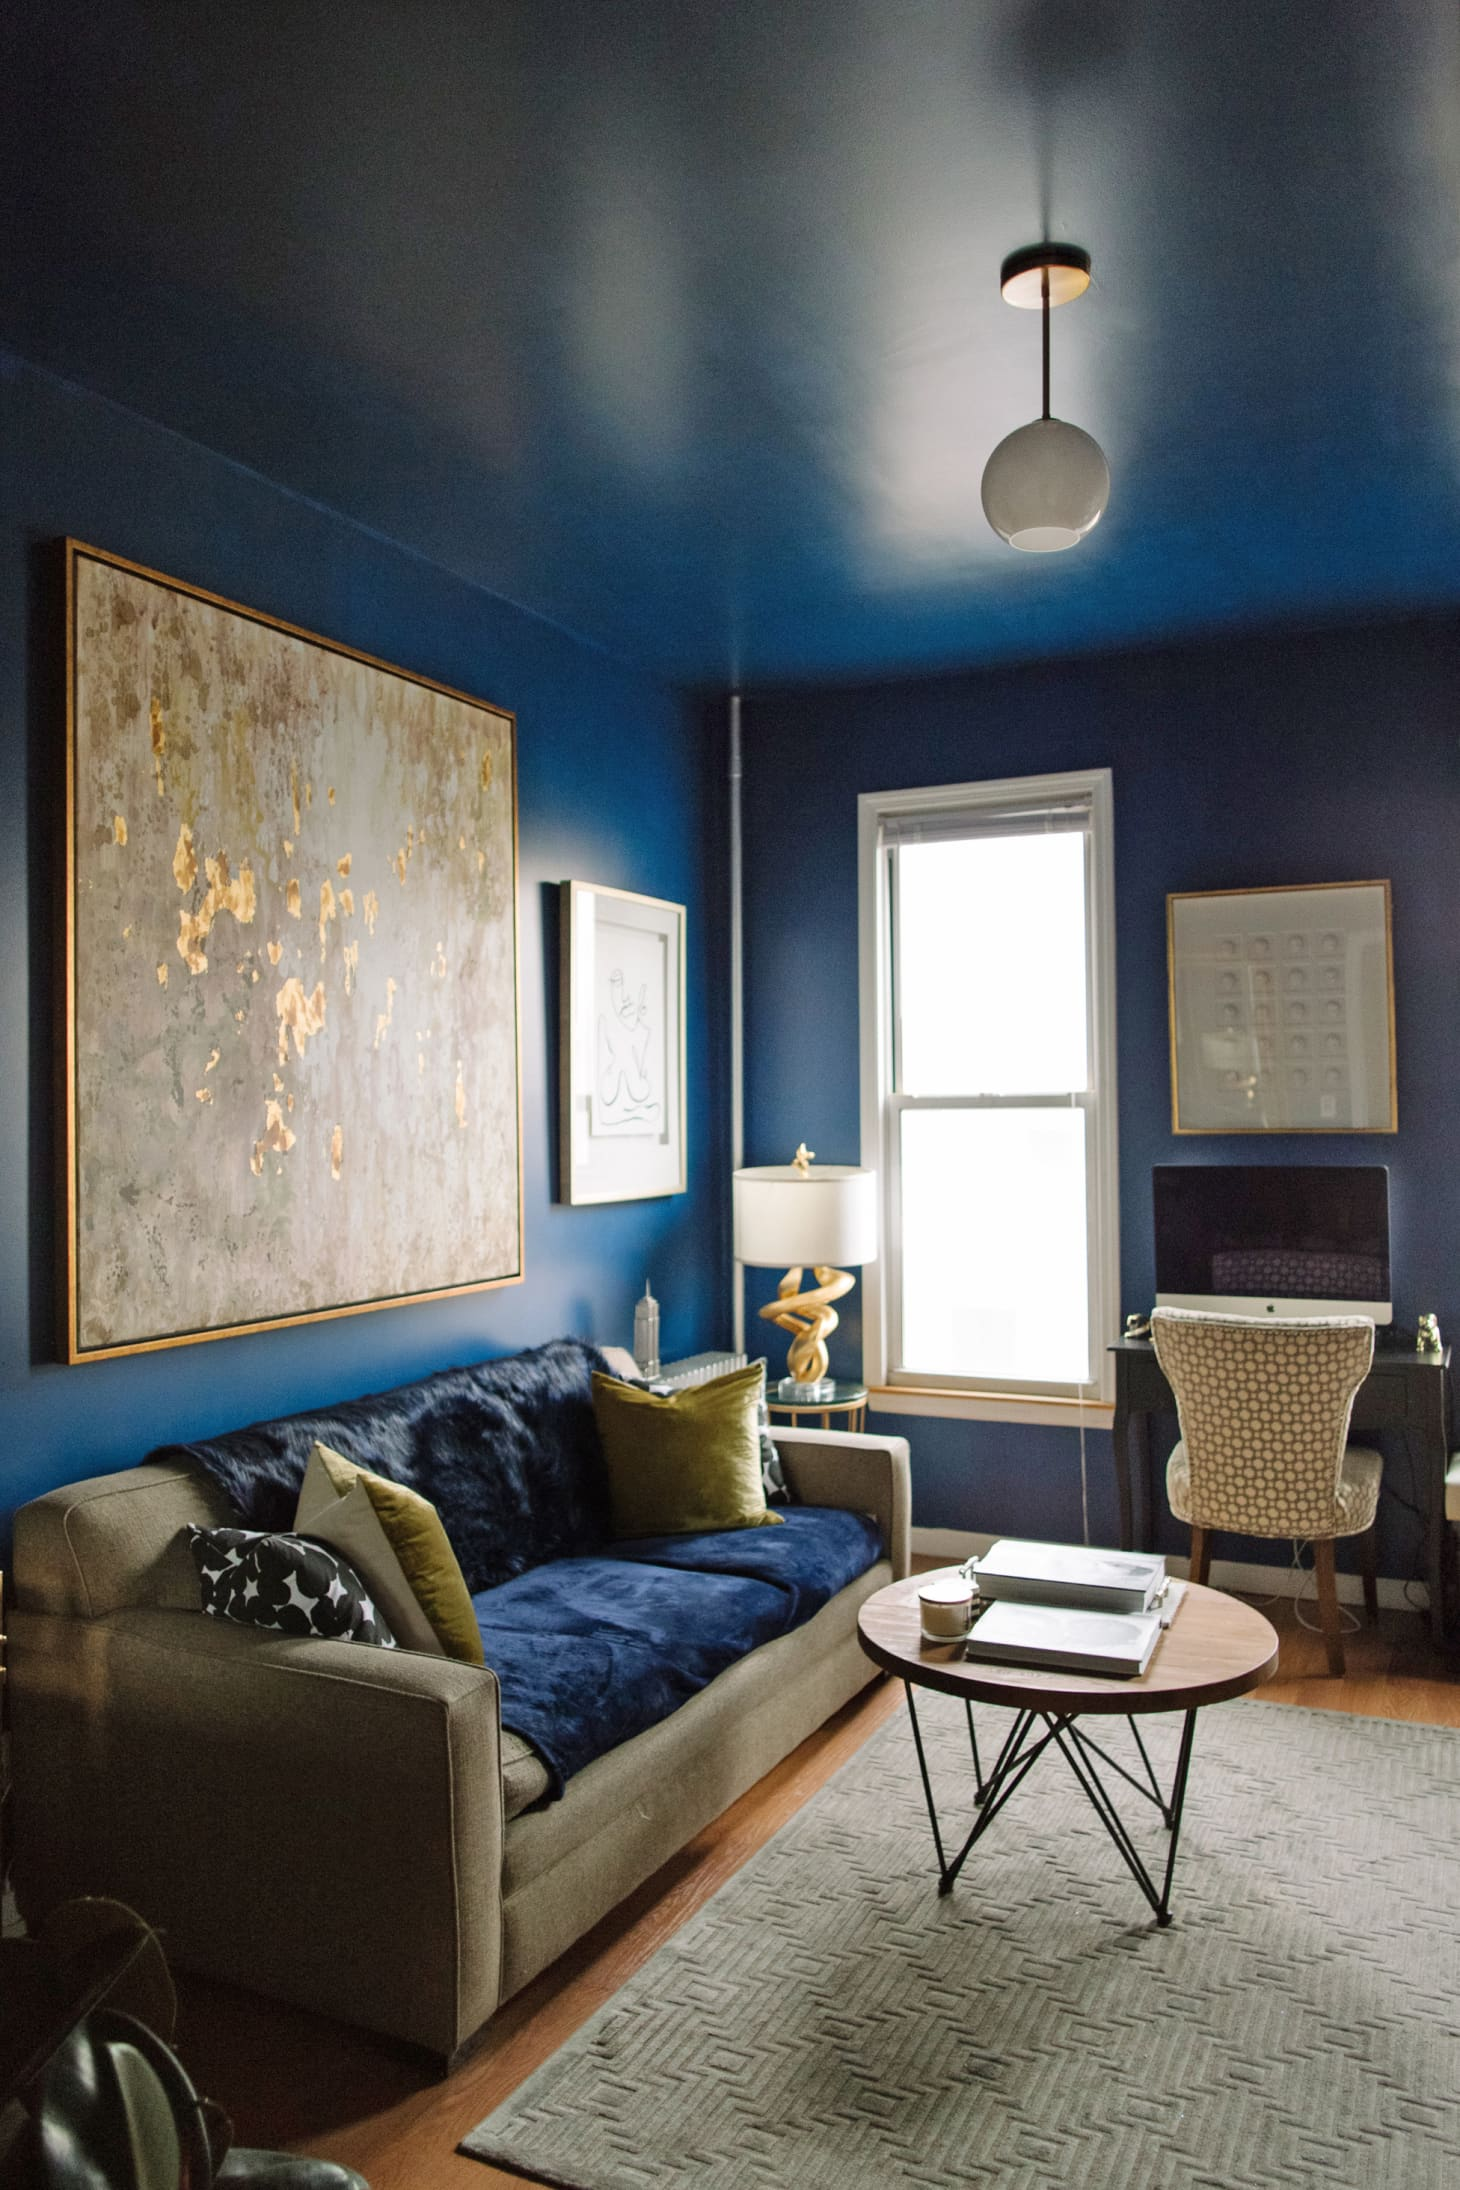 The Best Blue Living Room Paint Colors, According to Real ...